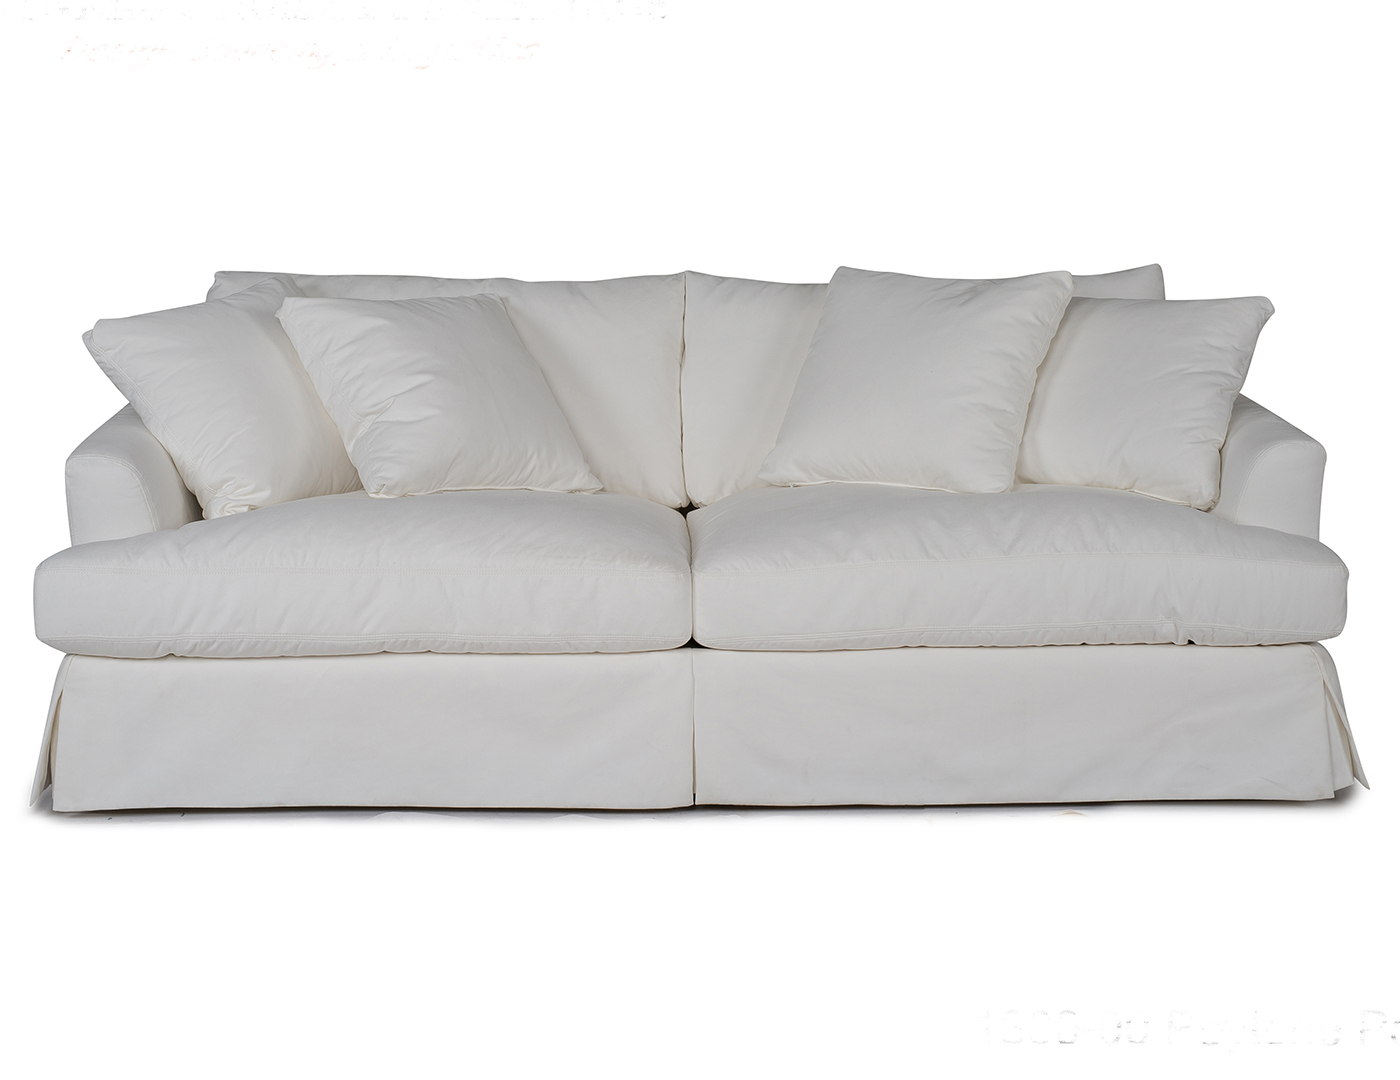 Sofa Bed Ebay Peterborough 25 Fresh Sectional Sofas Steinhafels